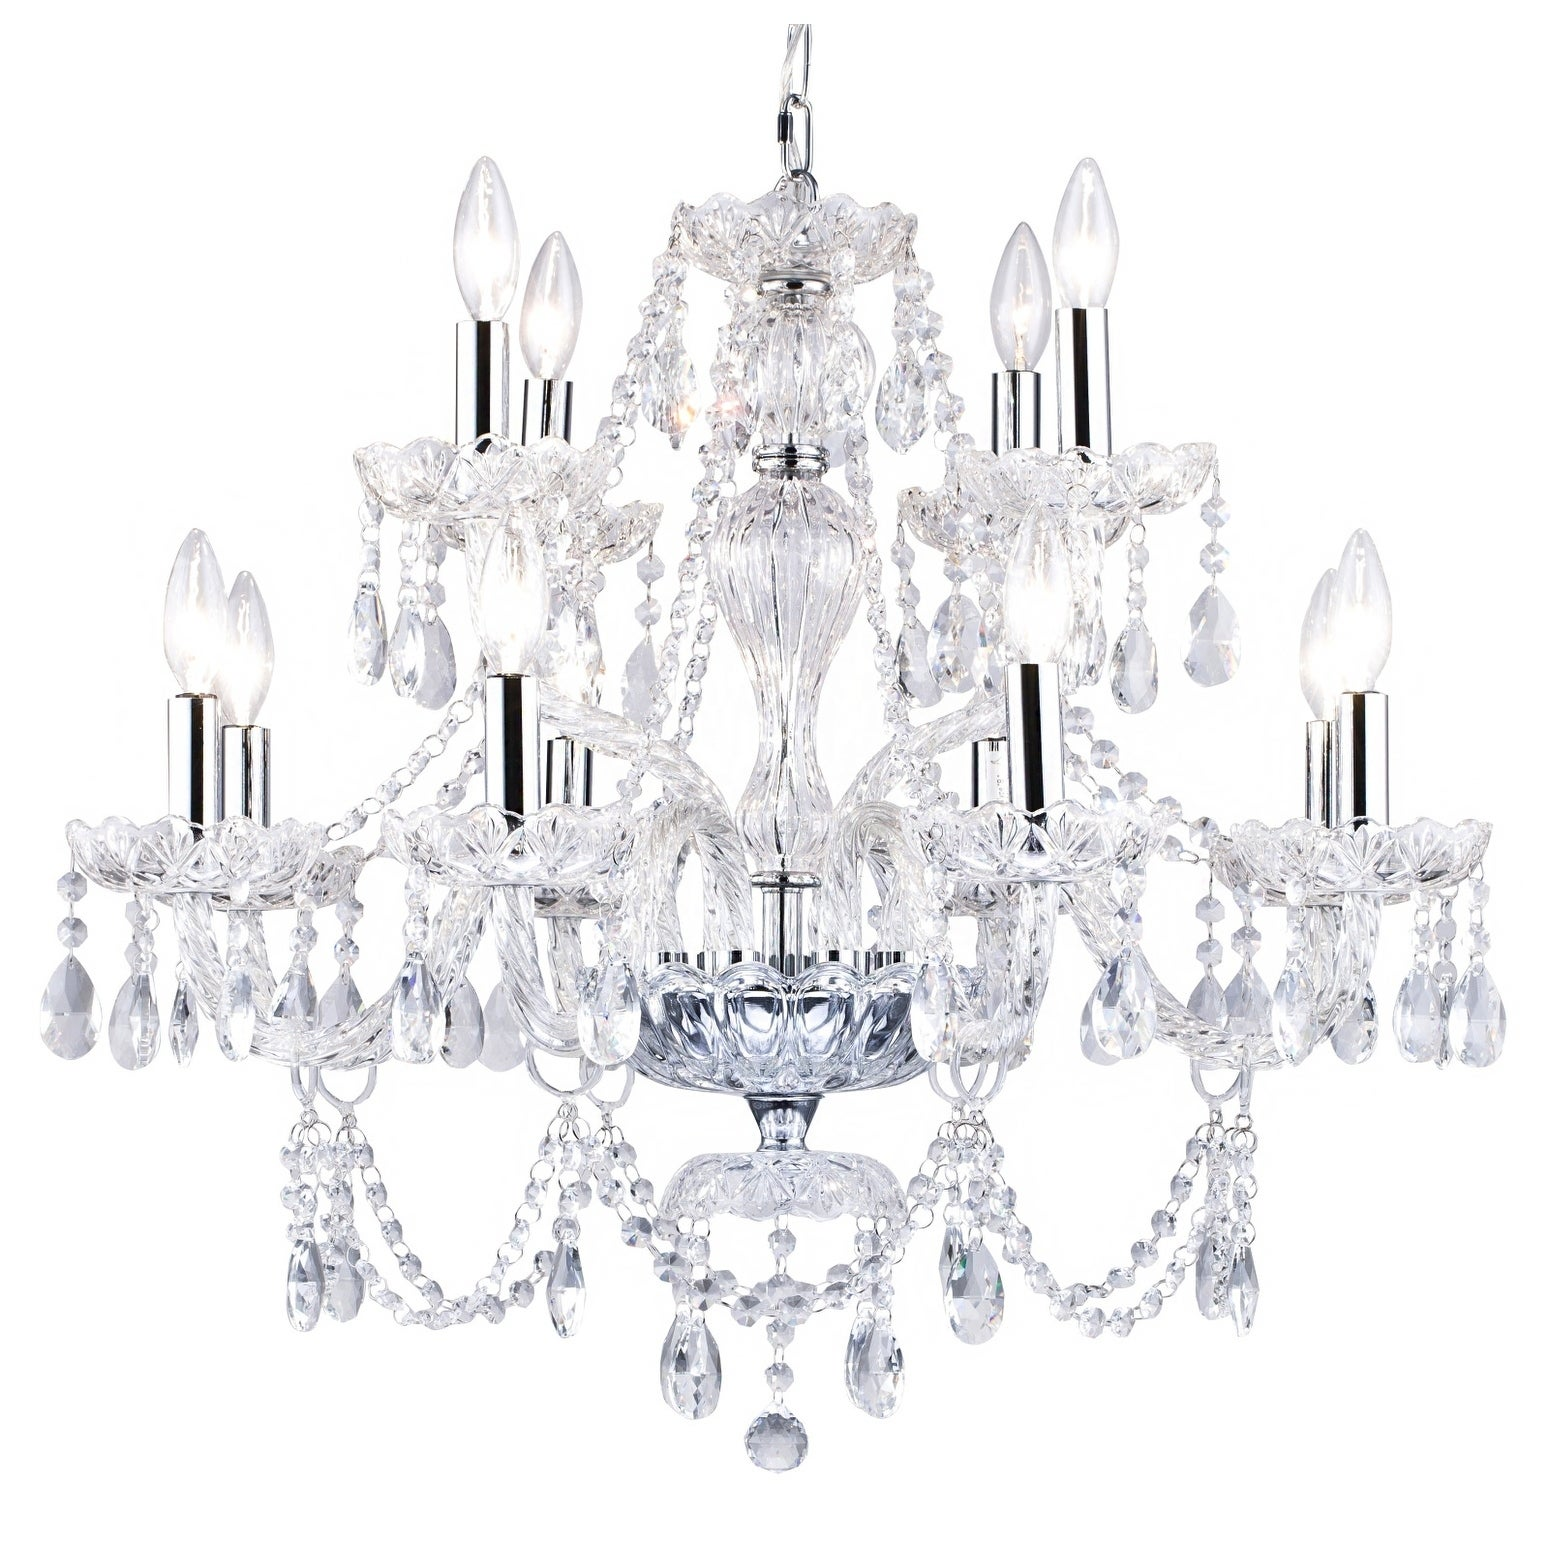 Two Tiers Chrome Metal Chandelier With Crystal Accents